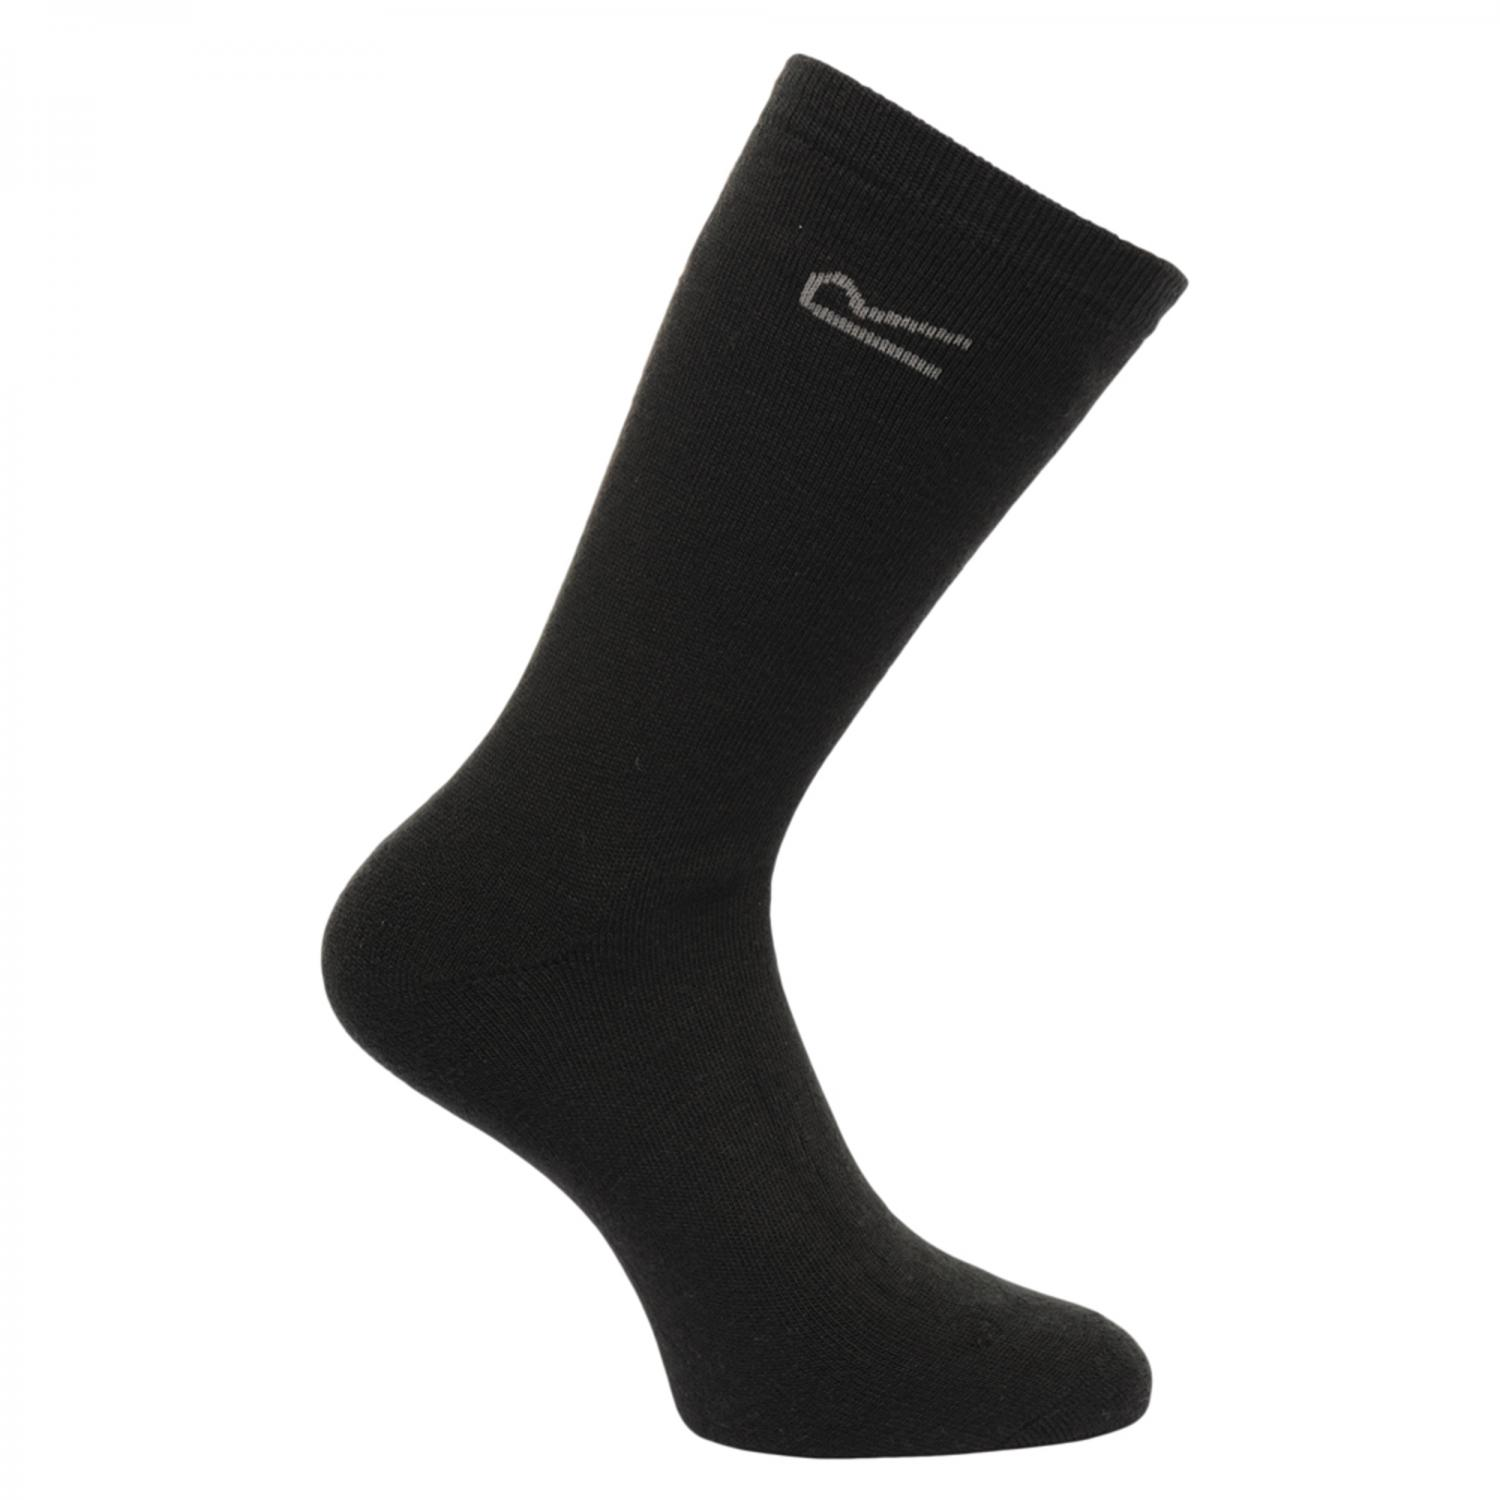 5pk Thermal Sock Black